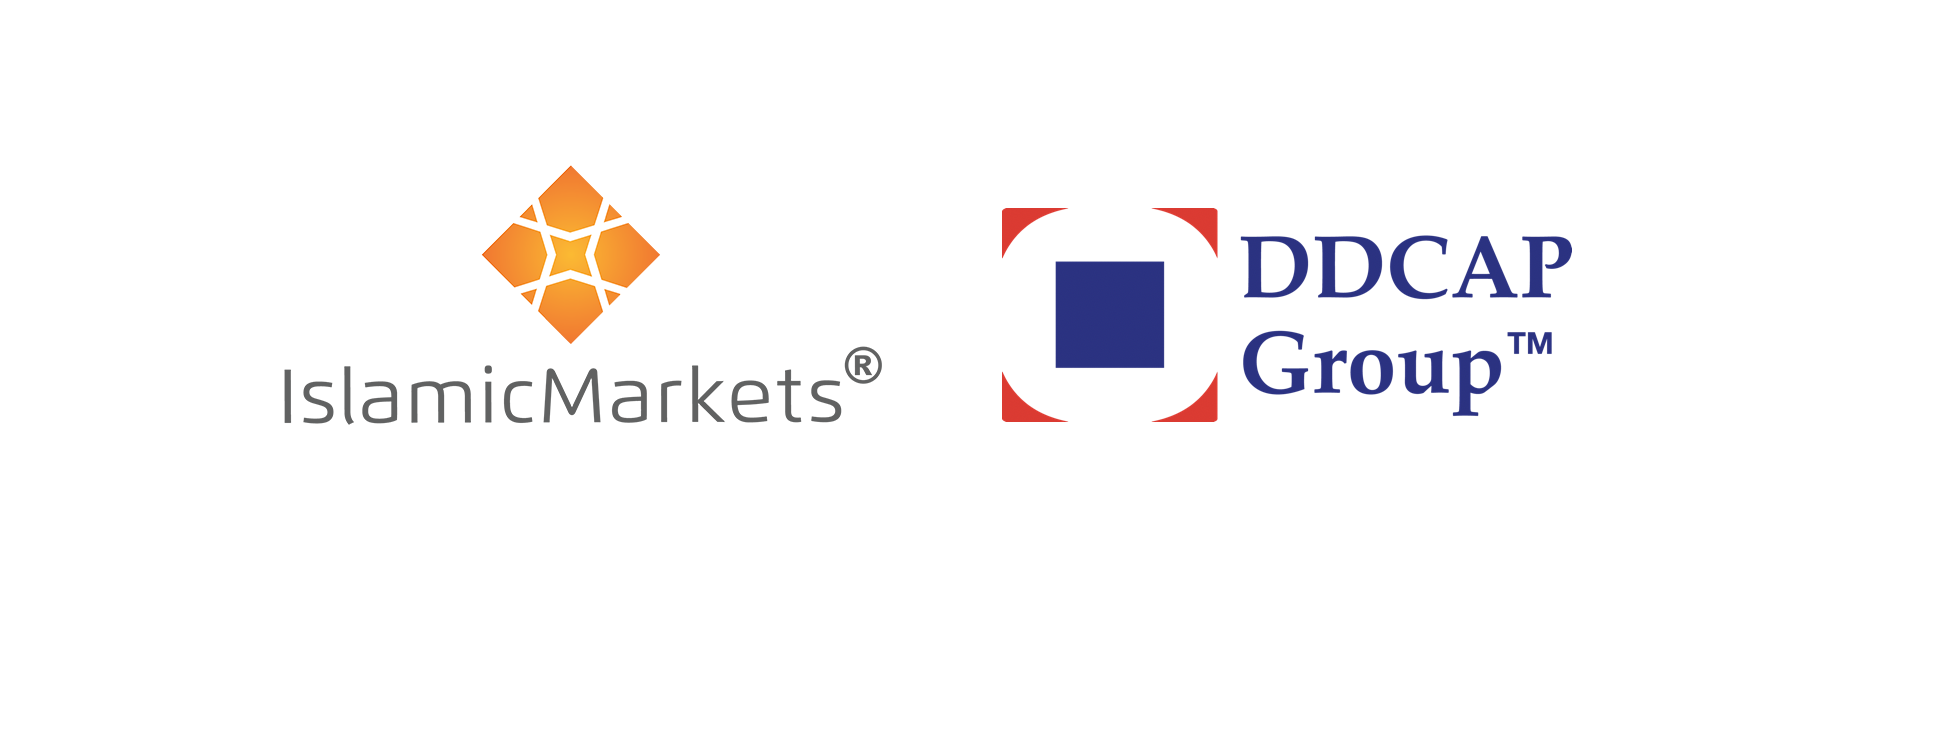 IslamicMarkets.com and DDCAP Strengthen Collaboration with Second Round of Strategic Investment